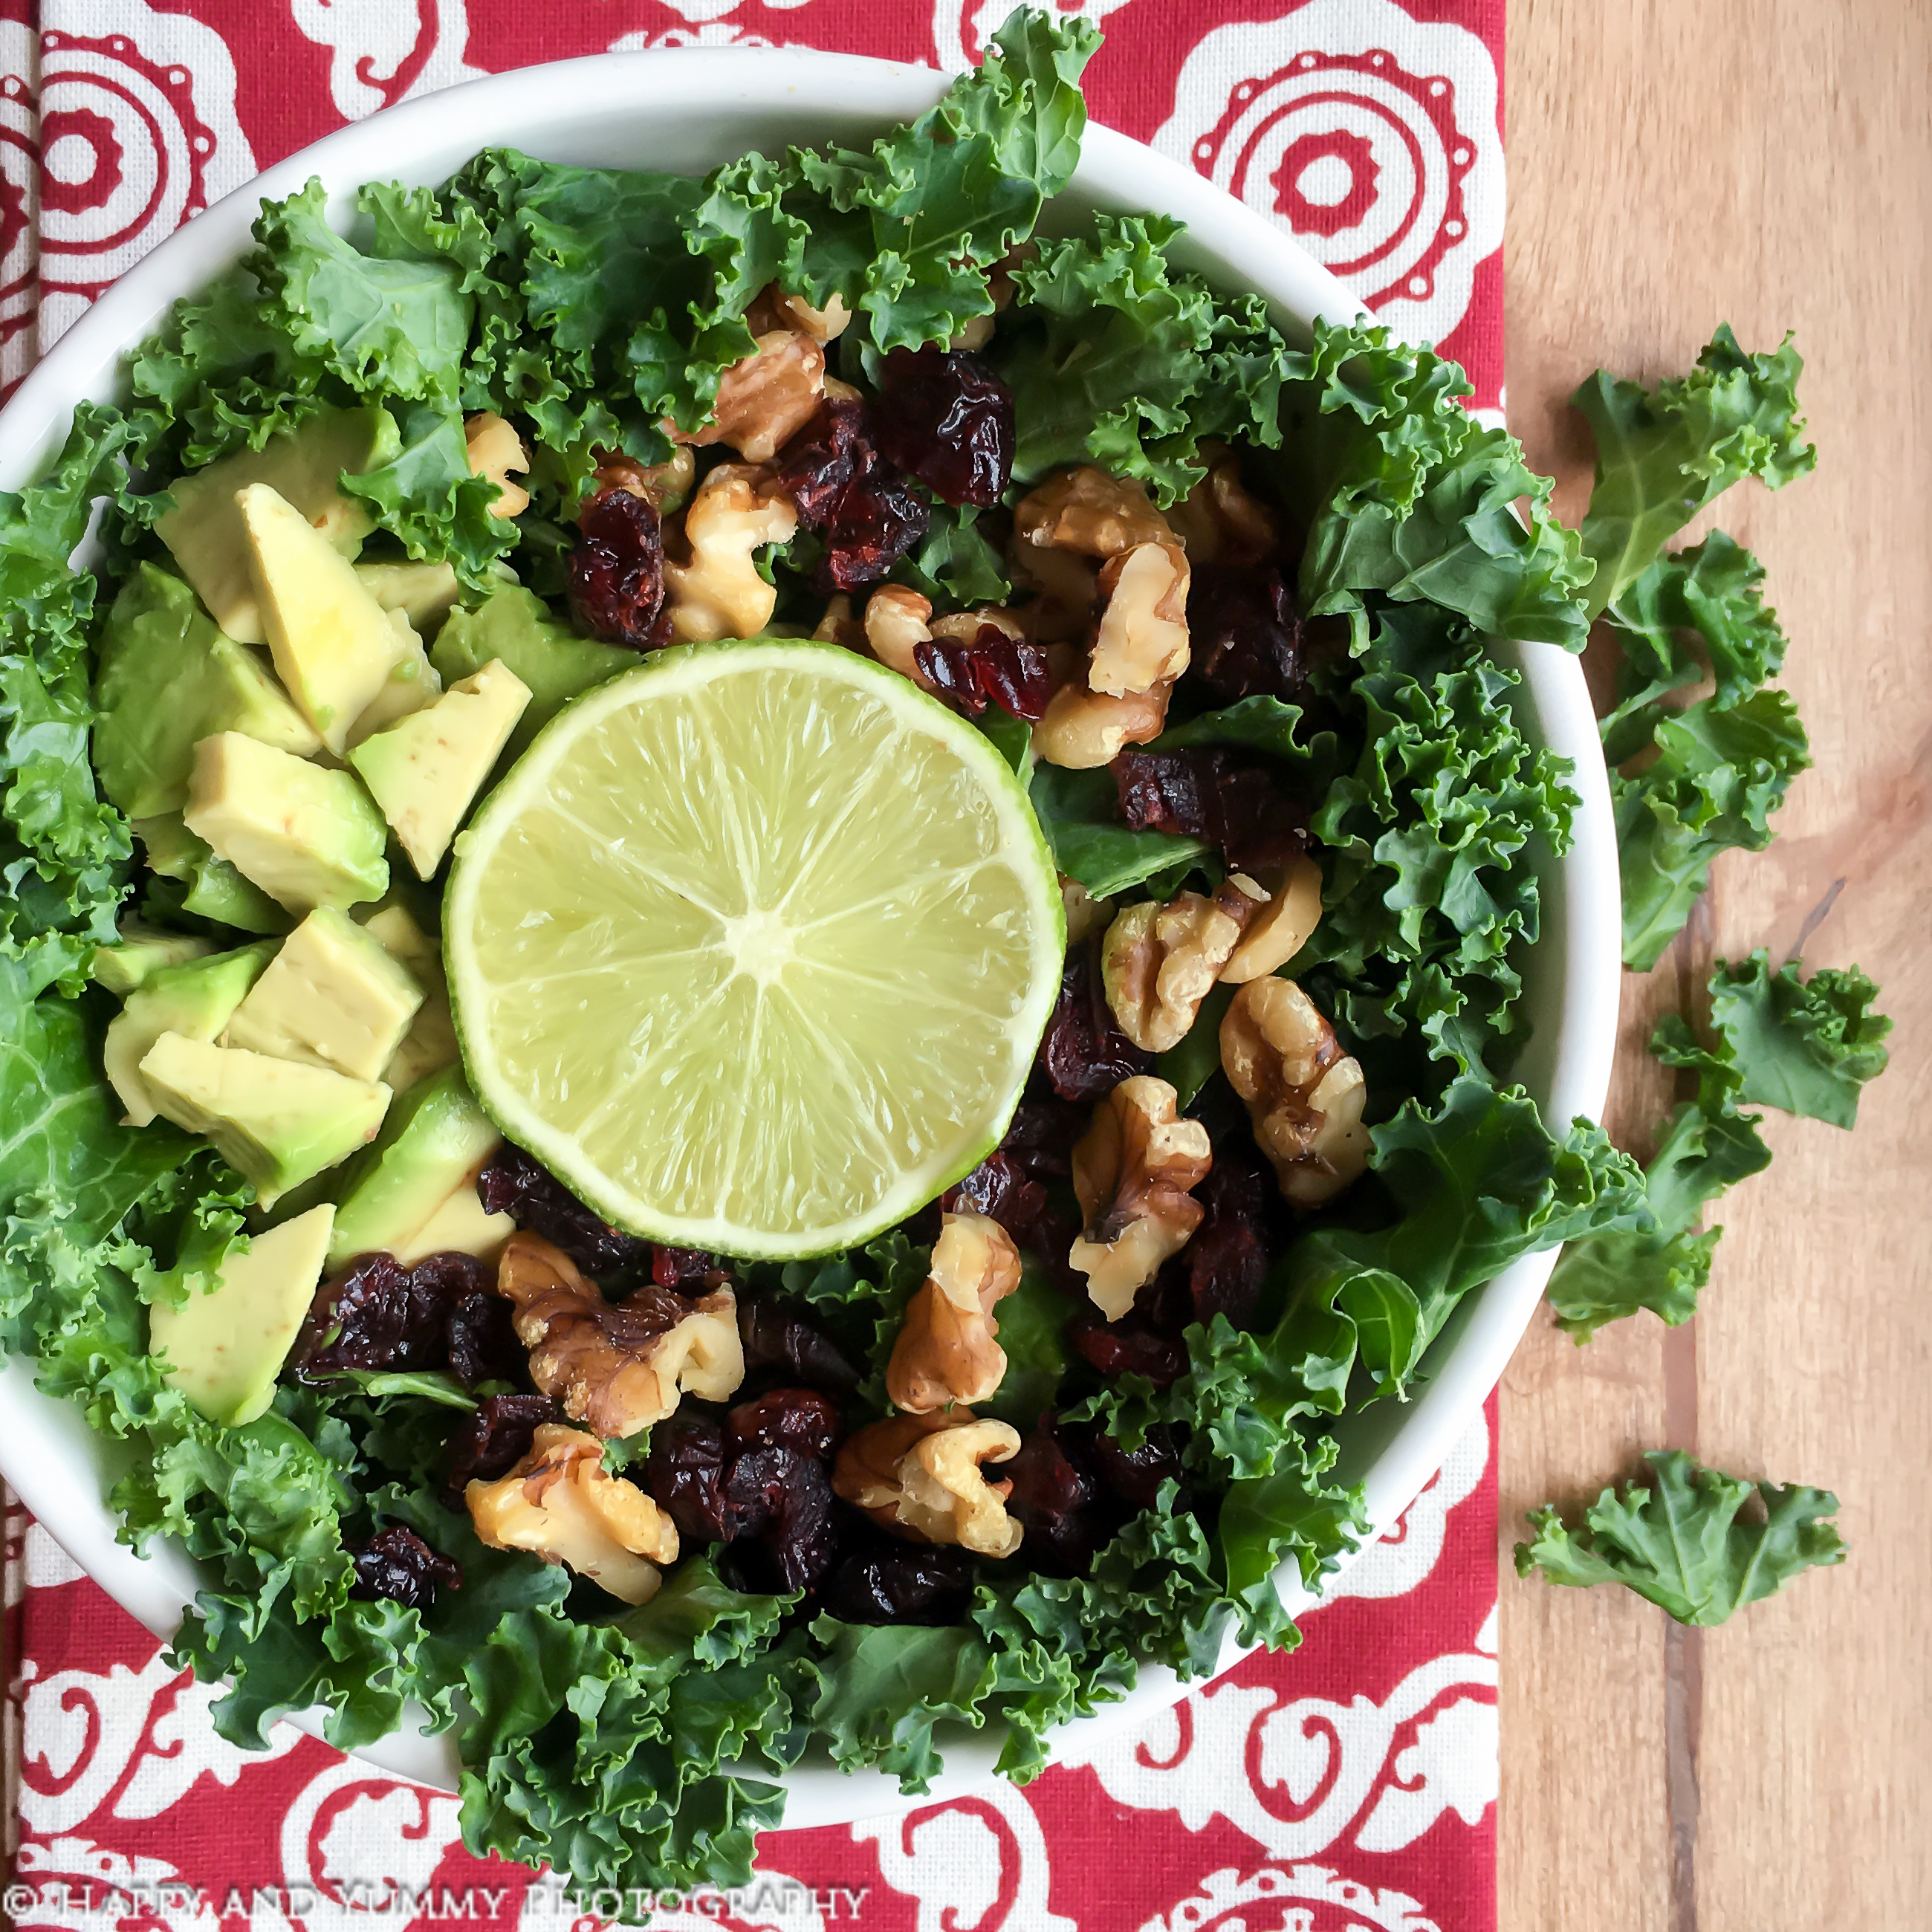 Lee's Kale and Avocado Salad